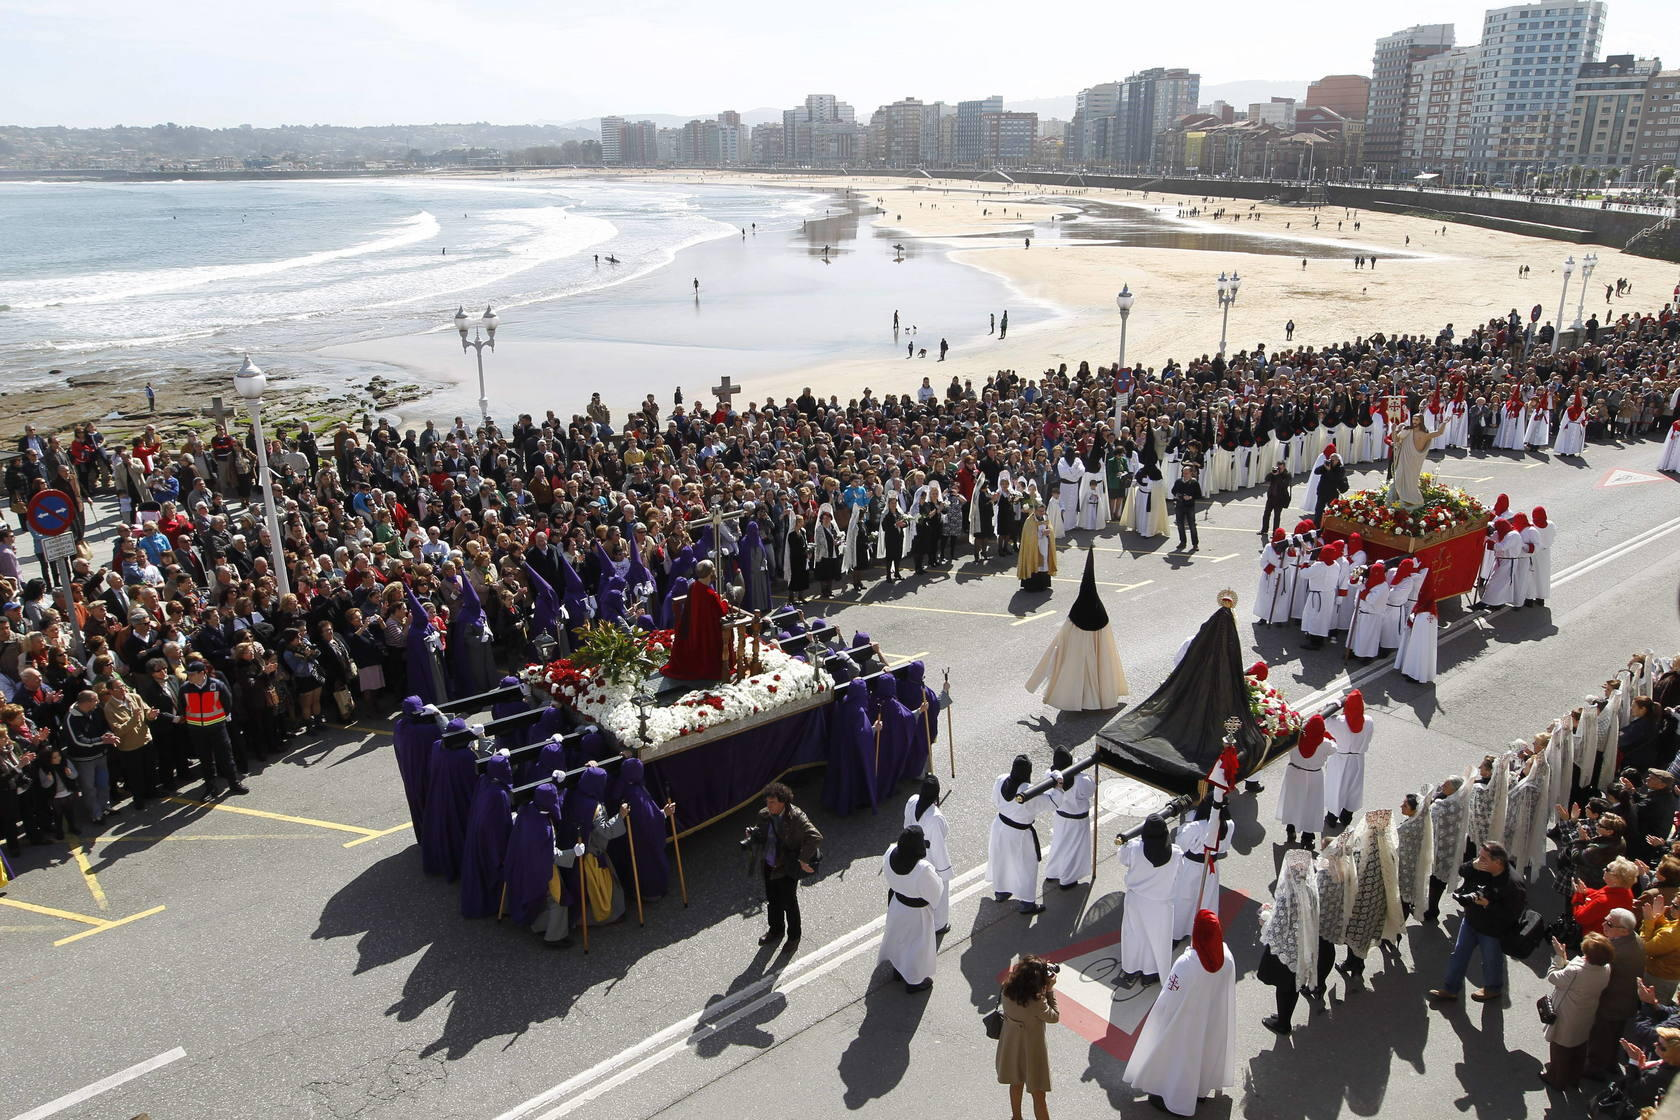 Procesiones del Domingo de Resurrecci&oacute;n en Gij&oacute;n